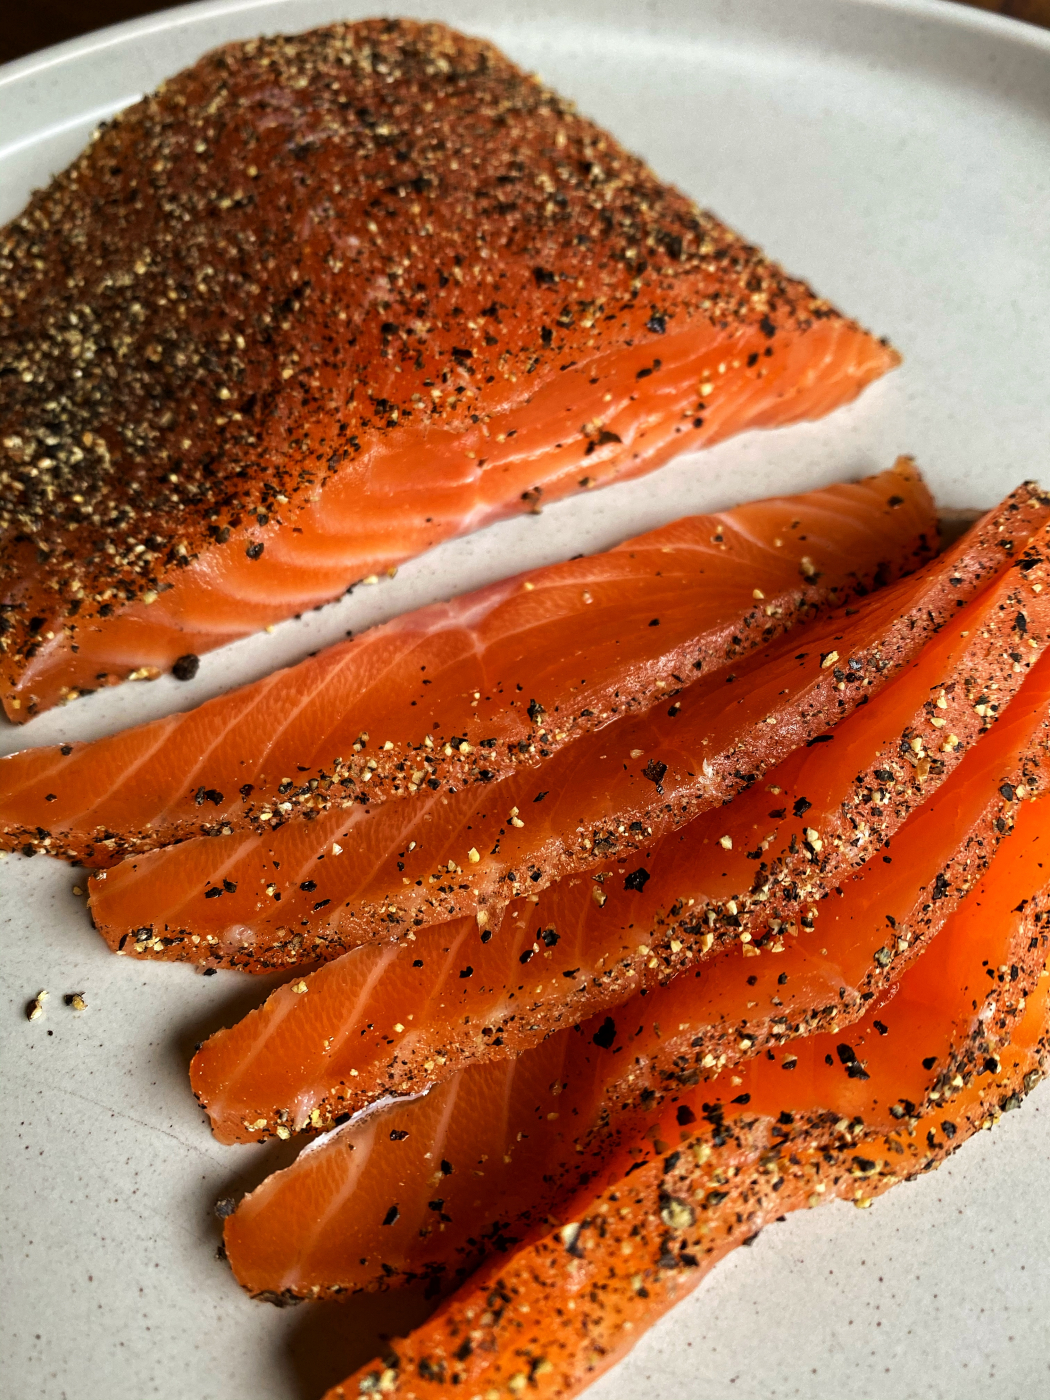 simple salmon pastrami. Scottish Salmon cured for three days , smoked with hickory. Coated well with freshly ground black pepper.